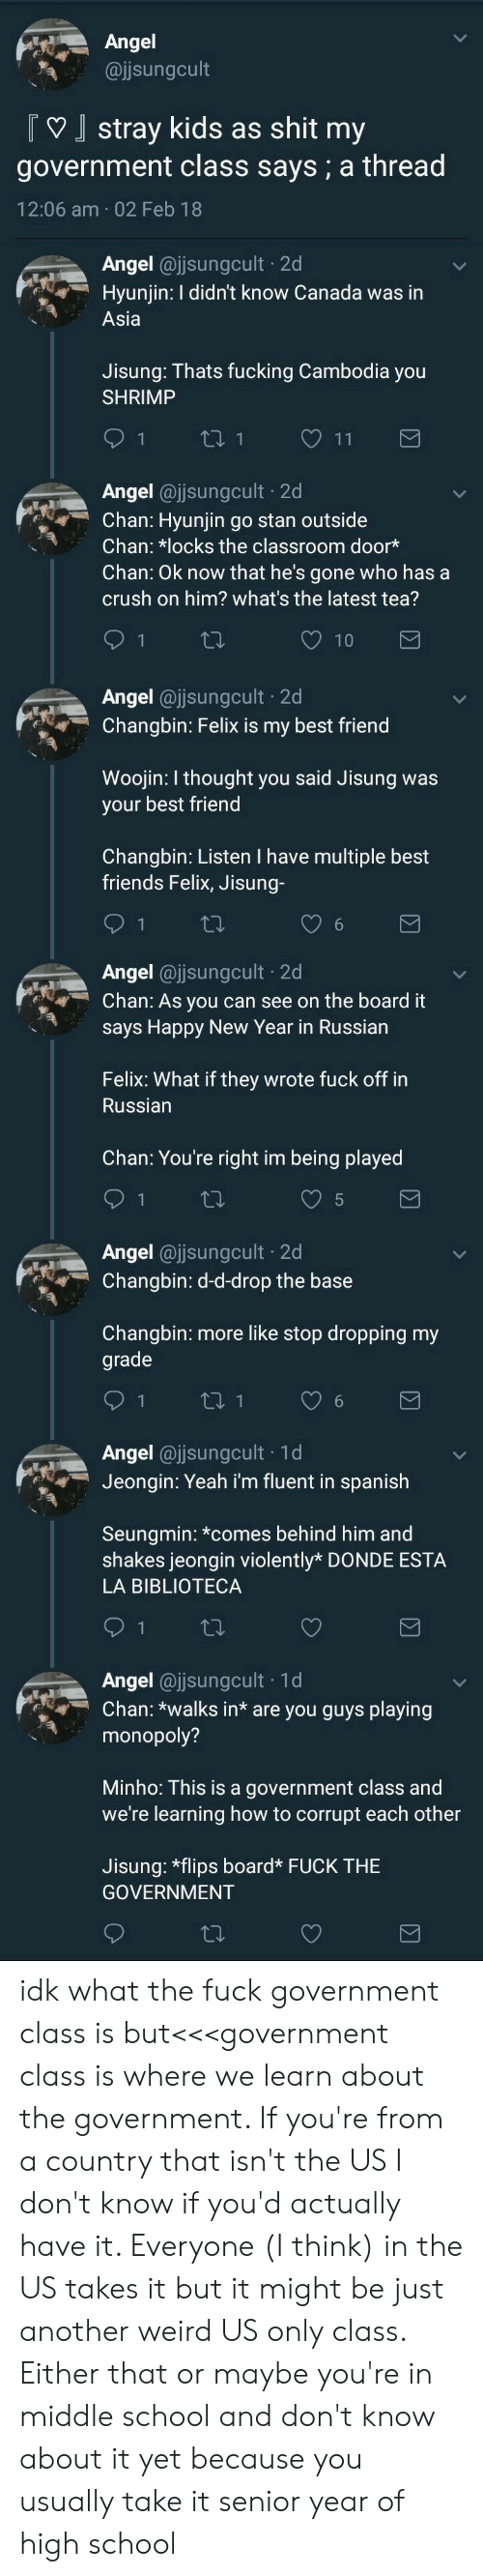 La Biblioteca: Ange  @jjsungcult  Tstray kids as shit my  government class says; a thread  12:06 am 02 Feb 18  Angel @ijsungcuit-2d  Hyunjin: I didn't know Canada was in  RAİ  Asia  Jisung: Thats fucking Cambodia you  SHRIMP  LTİ, Angel @ijsungcuit-2d  Chan: Hyunjin go stan outside  Chan: *locks the classroom door*  Chan: Ok now that he's gone who has a  crush on him? what's the latest tea?  Angel ajsungcult 2d  Changbin: Felix is my best friend  Woojin: I thought you said Jisung was  your best friend  Changbin: Listen I have multiple best  friends Felix, Jisung-  Angel @jsungcult 2d  Chan: As you can see on the board it  says Happy New Year in Russian  Felix: What if they wrote fuck off in  Russian  Chan: You're right im being played  Angel @jsungcult 2d  Changbin: d-d-drop the base  Changbin: more like stop dropping my  grade  Angel@jsungcult 1d  Jeongn: Yeah i'm fluent in spanish  Seungmin: *comes behind him and  shakes jeongin violently* DONDE ESTA  LA BIBLIOTECA  th.  -1 d  A  ngel @jjsungcult  Chan: *walks in* are you guys playing  monopoly?  Minho: This is a government class and  we're learning how to corrupt each other  Jisung: *flips board*FUCK THIE  GOVERNMENT idk what the fuck government class is but<<<government class is where we learn about the government. If you're from a country that isn't the US I don't know if you'd actually have it. Everyone (I think) in the US takes it but it might be just another weird US only class. Either that or maybe you're in middle school and don't know about it yet because you usually take it senior year of high school